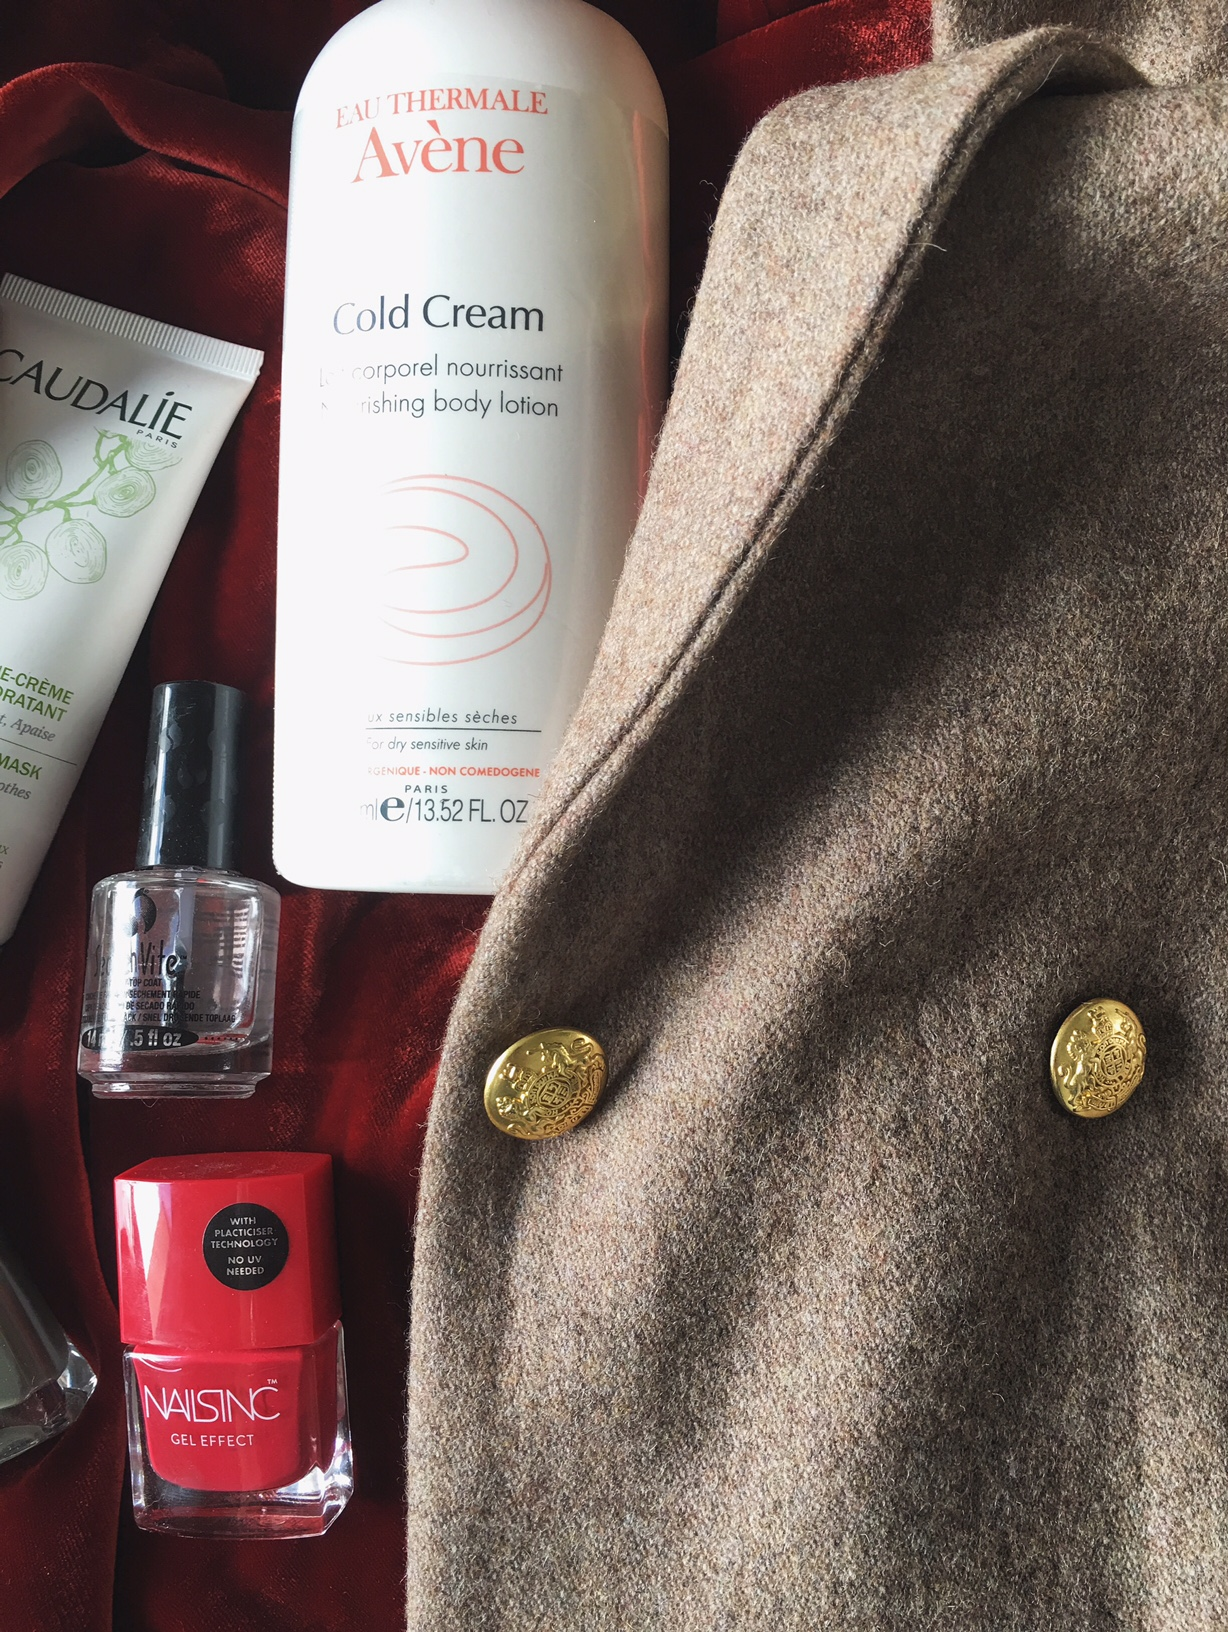 #vardagslyx#avene#nailsinc#caudalie#ganni#september#fall#favorites